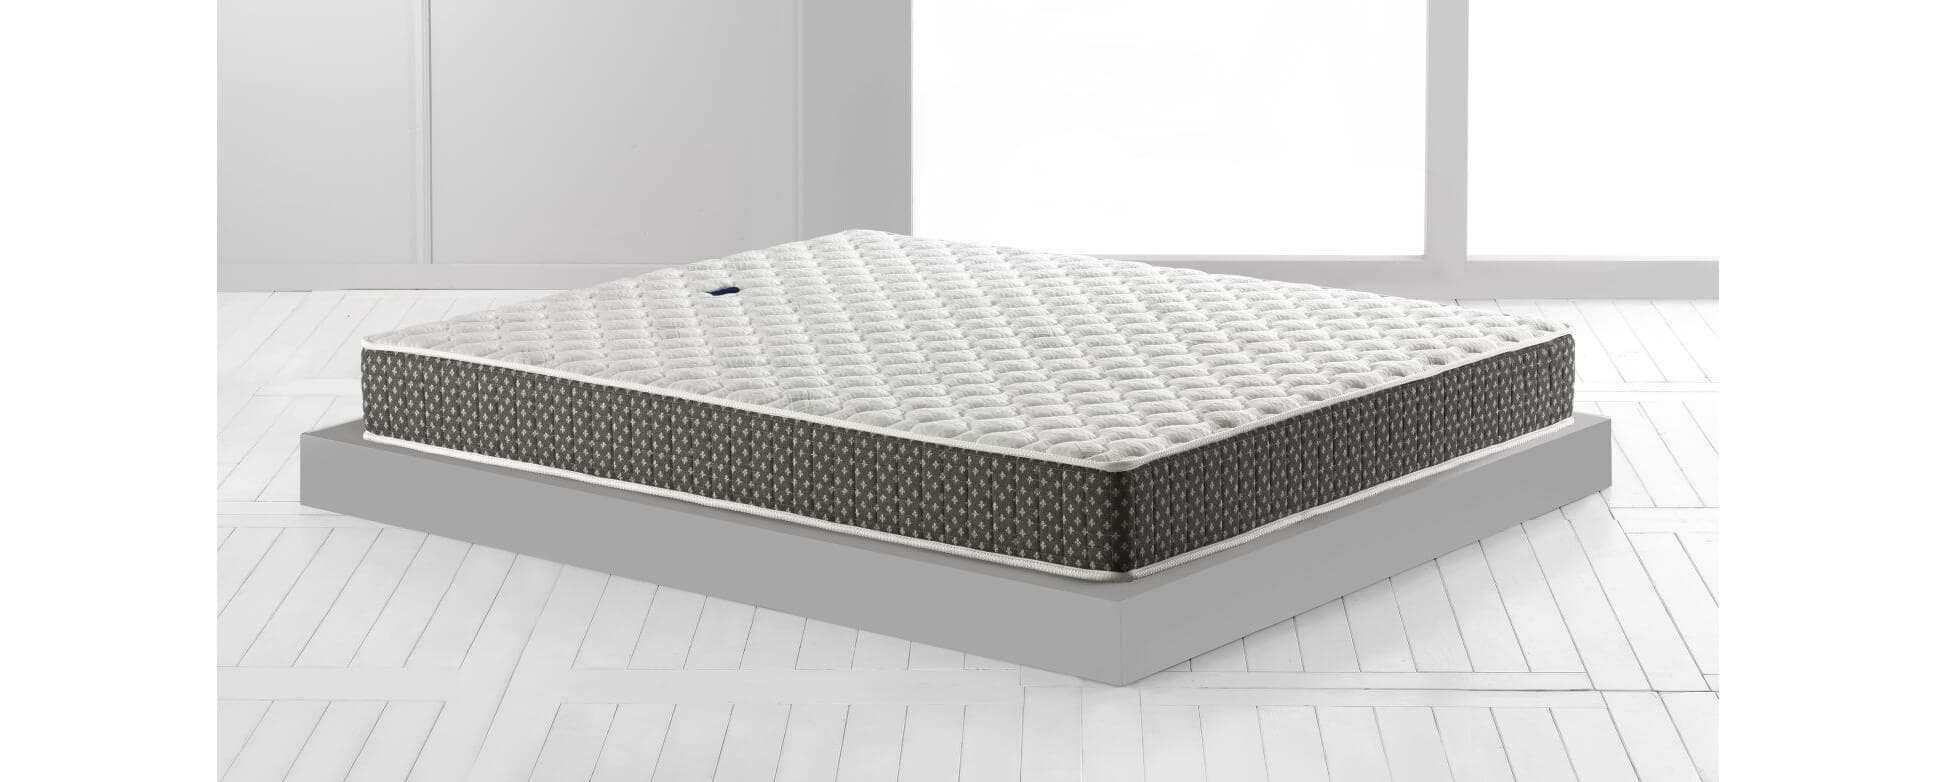 Mattress Magniflex Stiloso 8 - 1 - DeLaVega